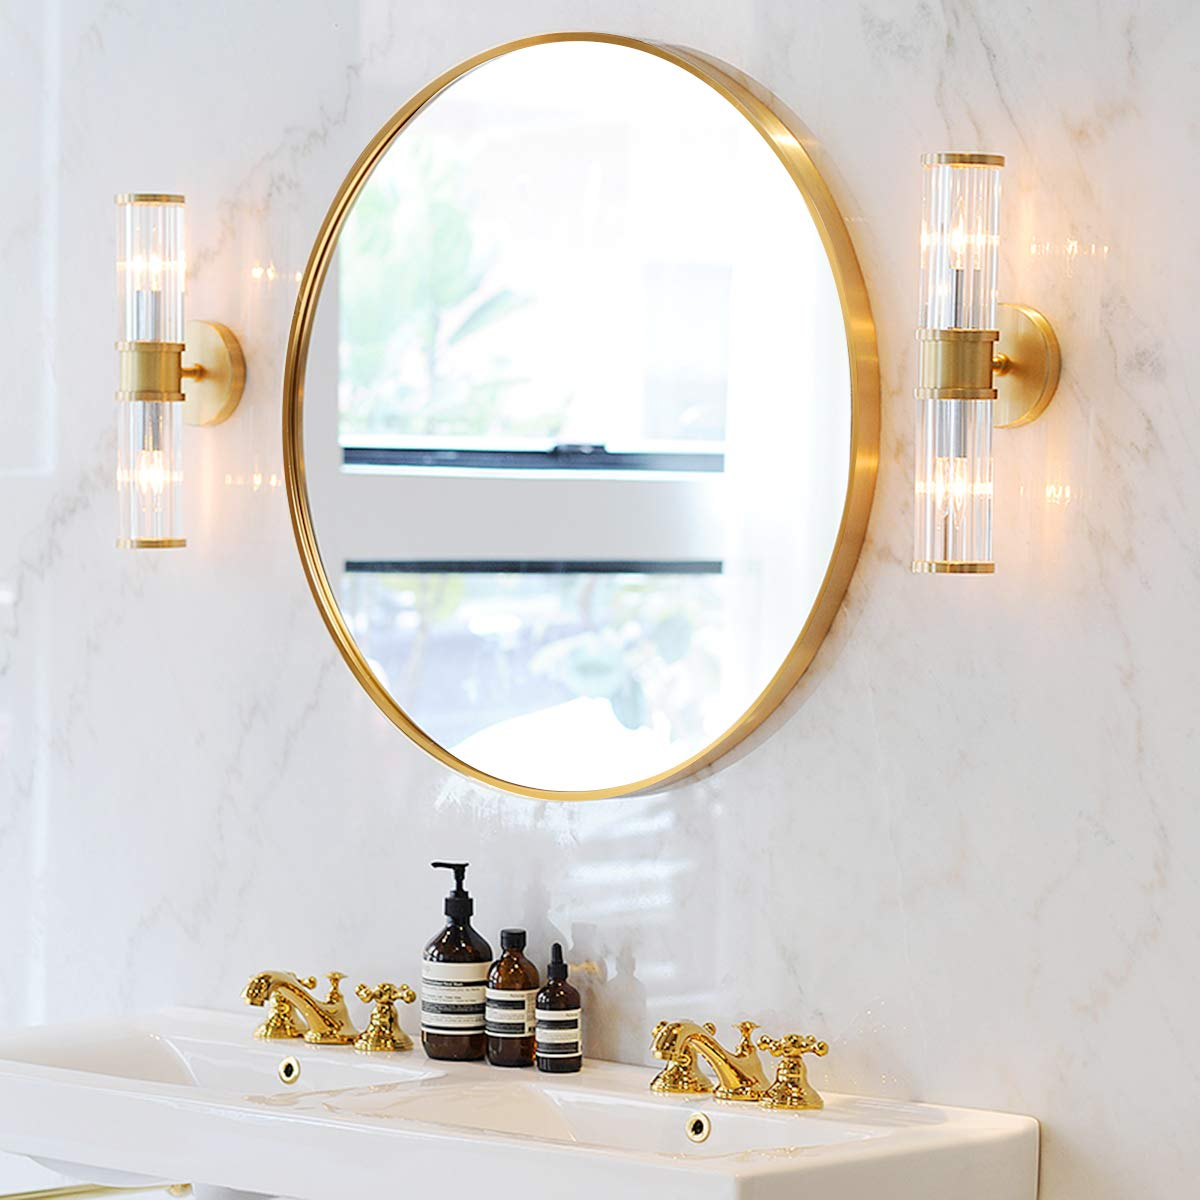 SHIGAKEN 31.5 Inch Round Mirror, Gold, Brushed Metal Frame, Large Home Decor, for Bedroom, Bathroom, Living Room, Entryway, Wall Decor, Vanity